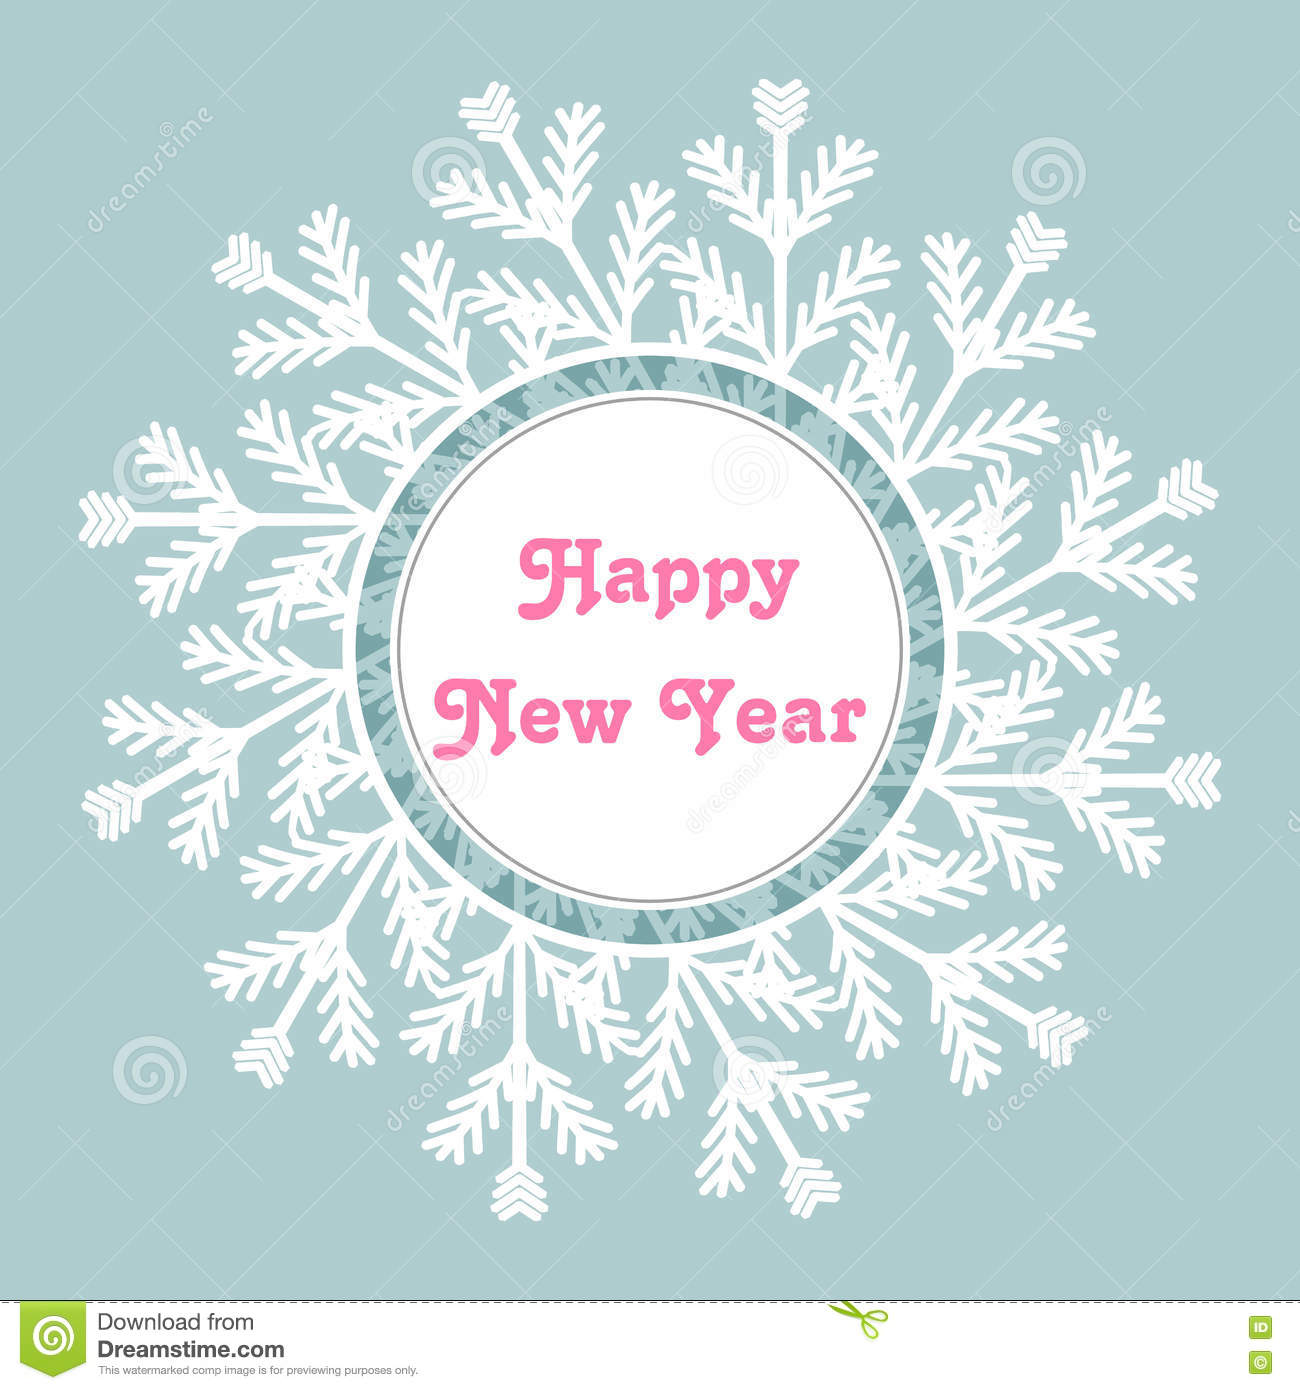 Snowflake Frame. Happy New Year Card. Vector Illustration